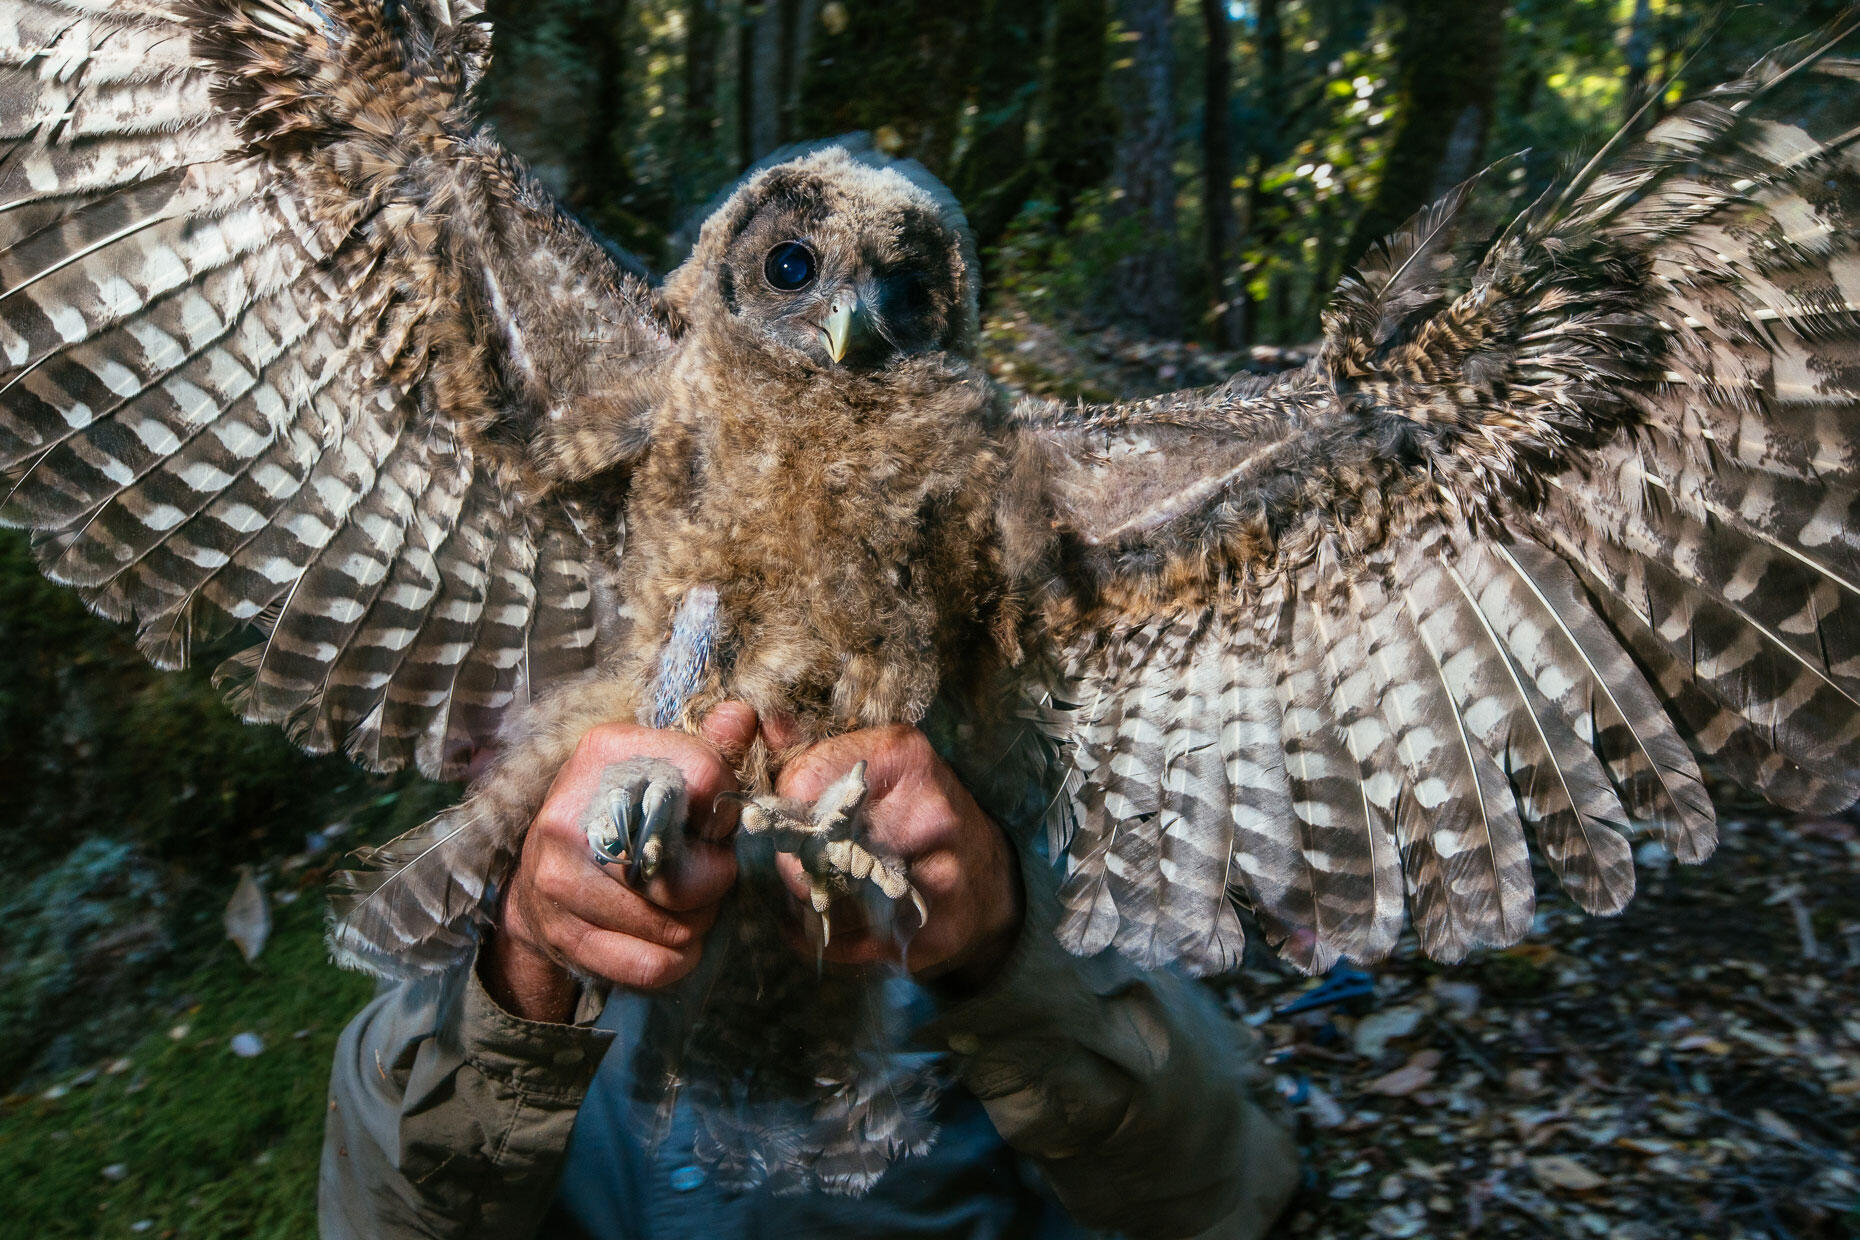 Use Your Photography to Support and Advance Conservation | Audubon